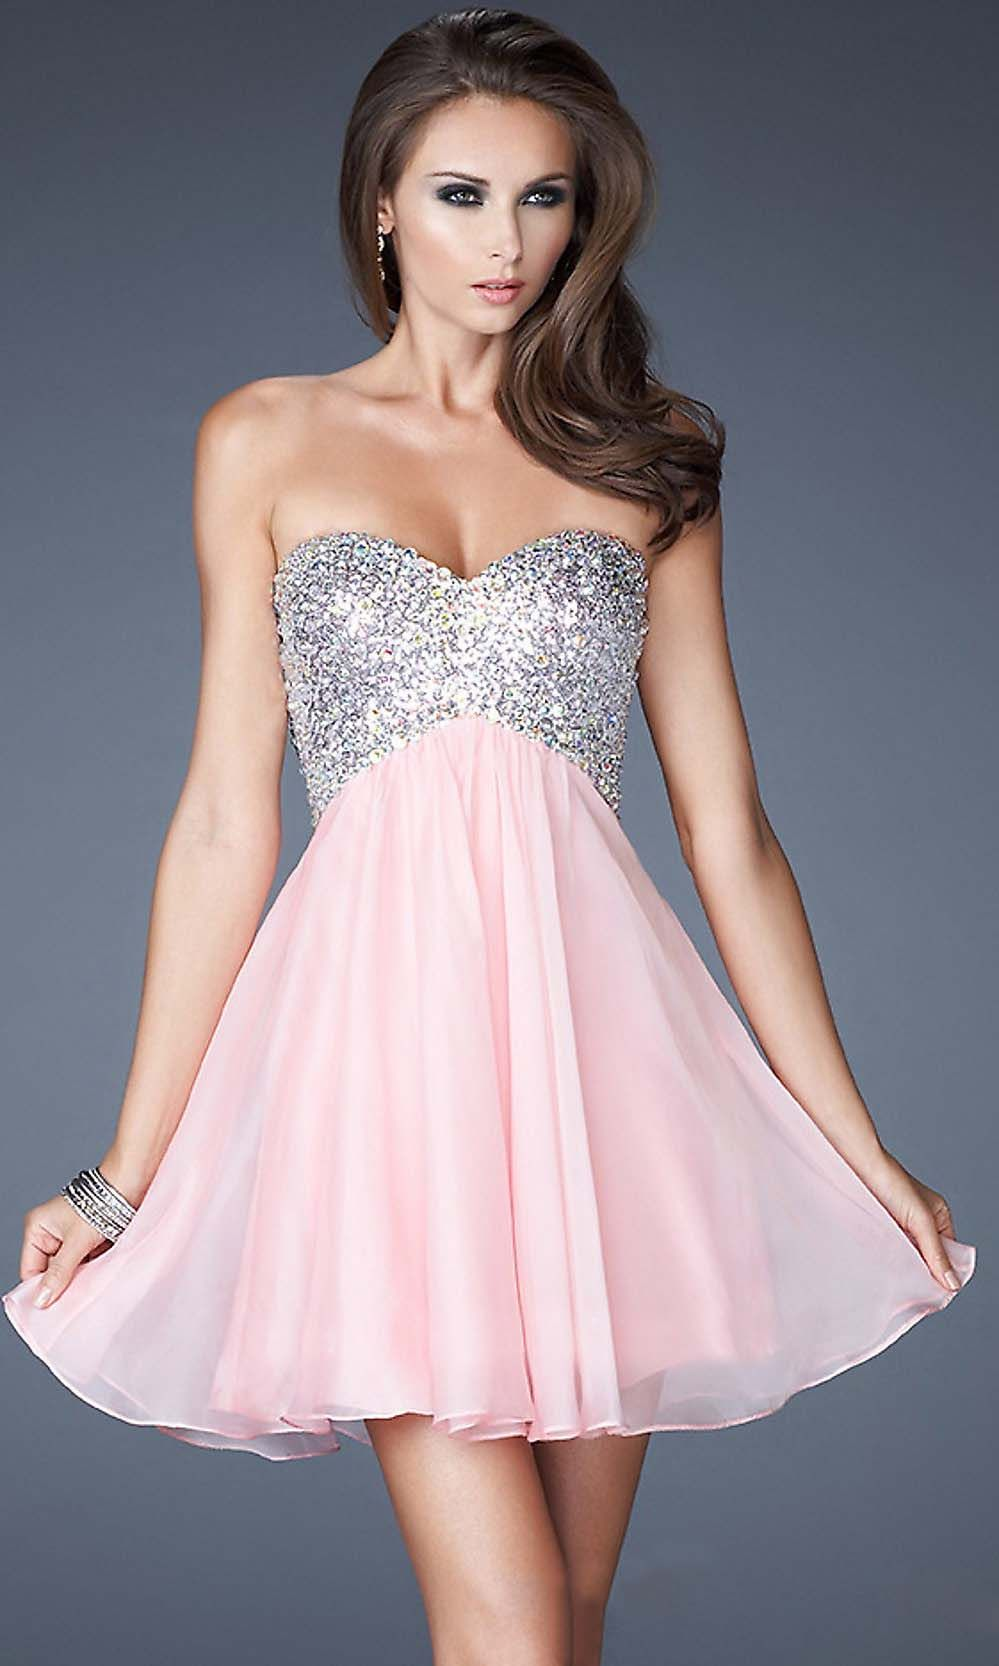 cheap jr prom dresses_Prom Dresses_dressesss